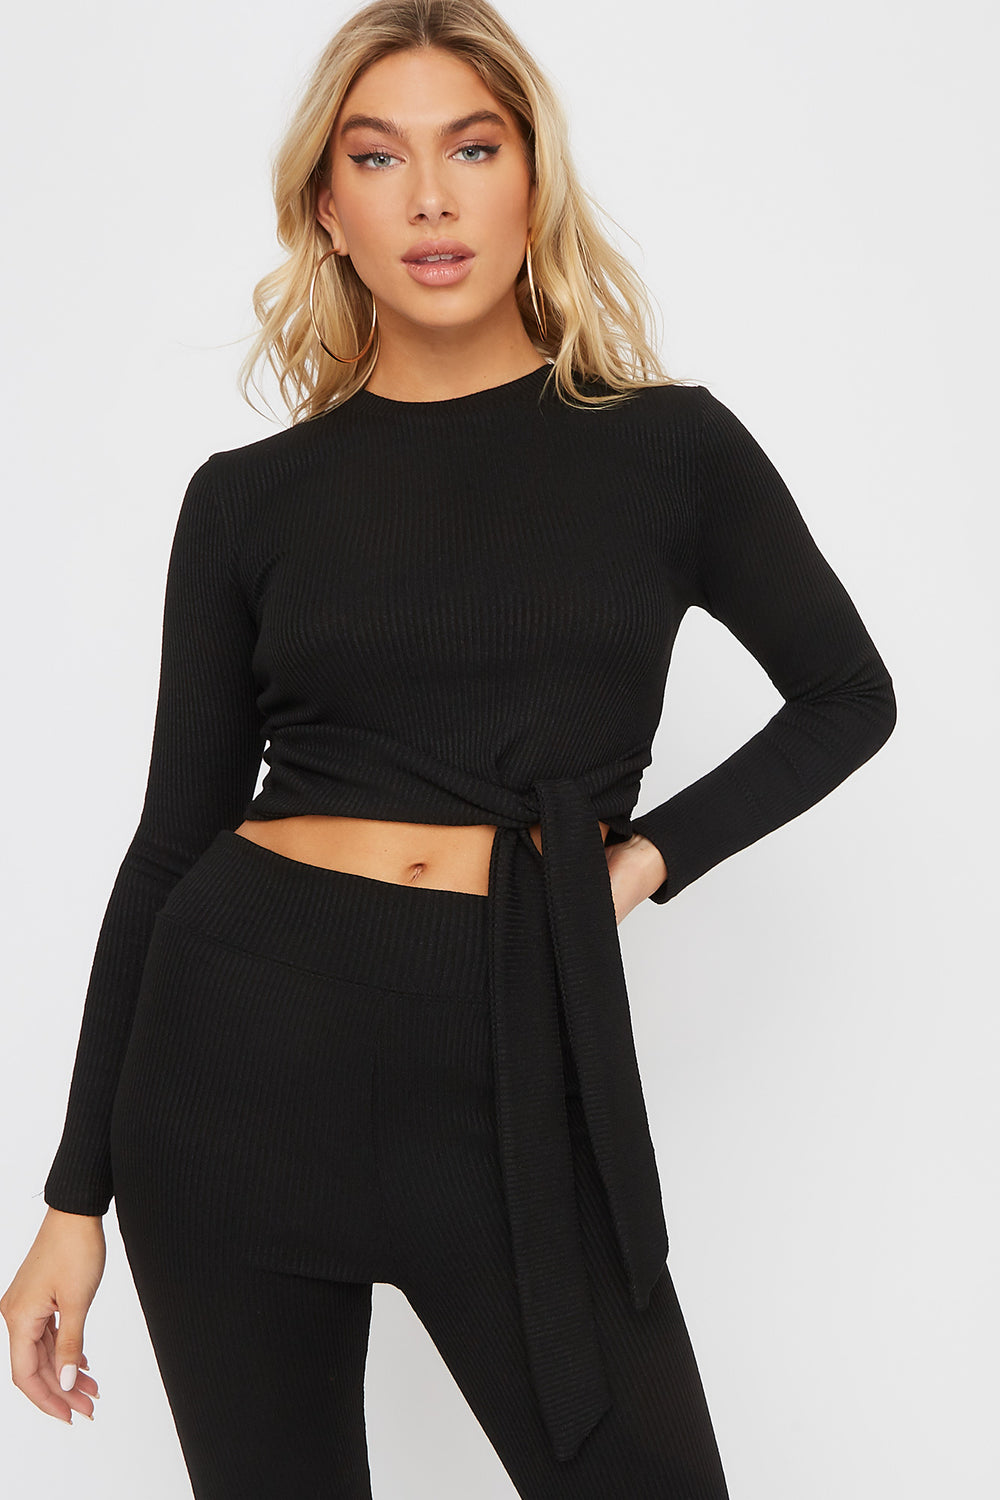 Ribbed Tie Cropped Long Sleeve Black